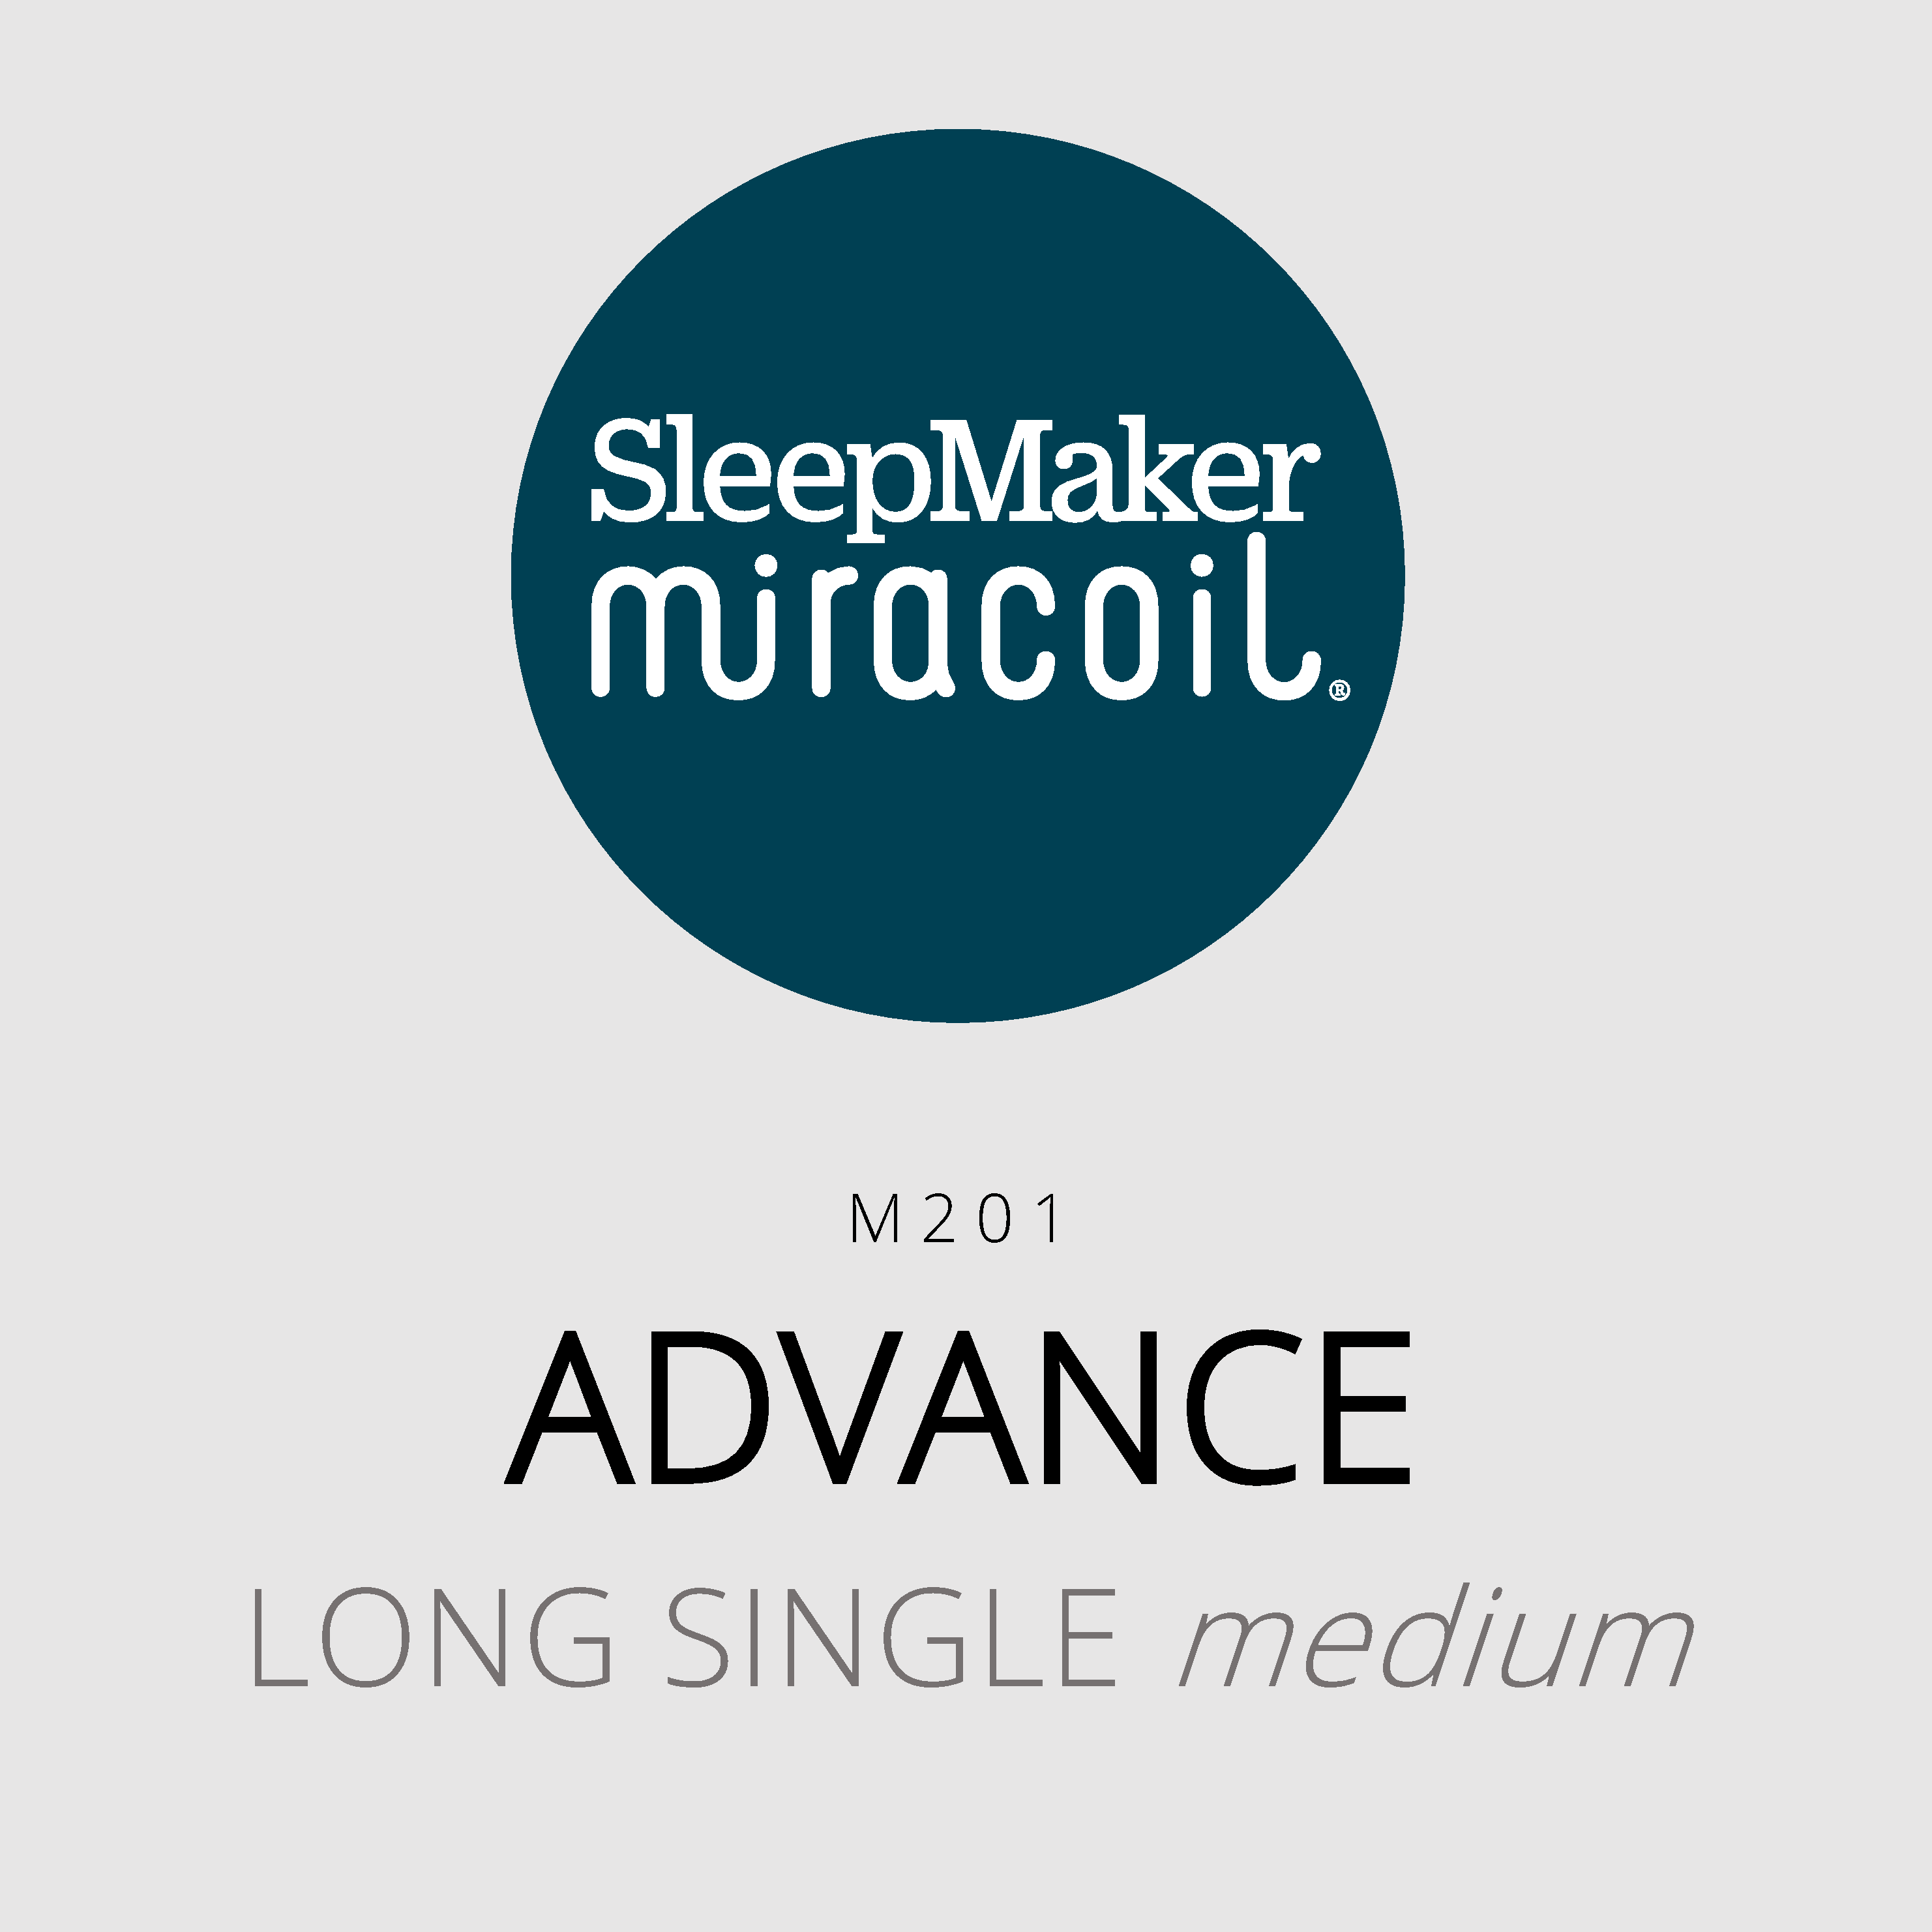 SleepMaker Miracoil – Advance – M201 – Long Single Medium Mattress